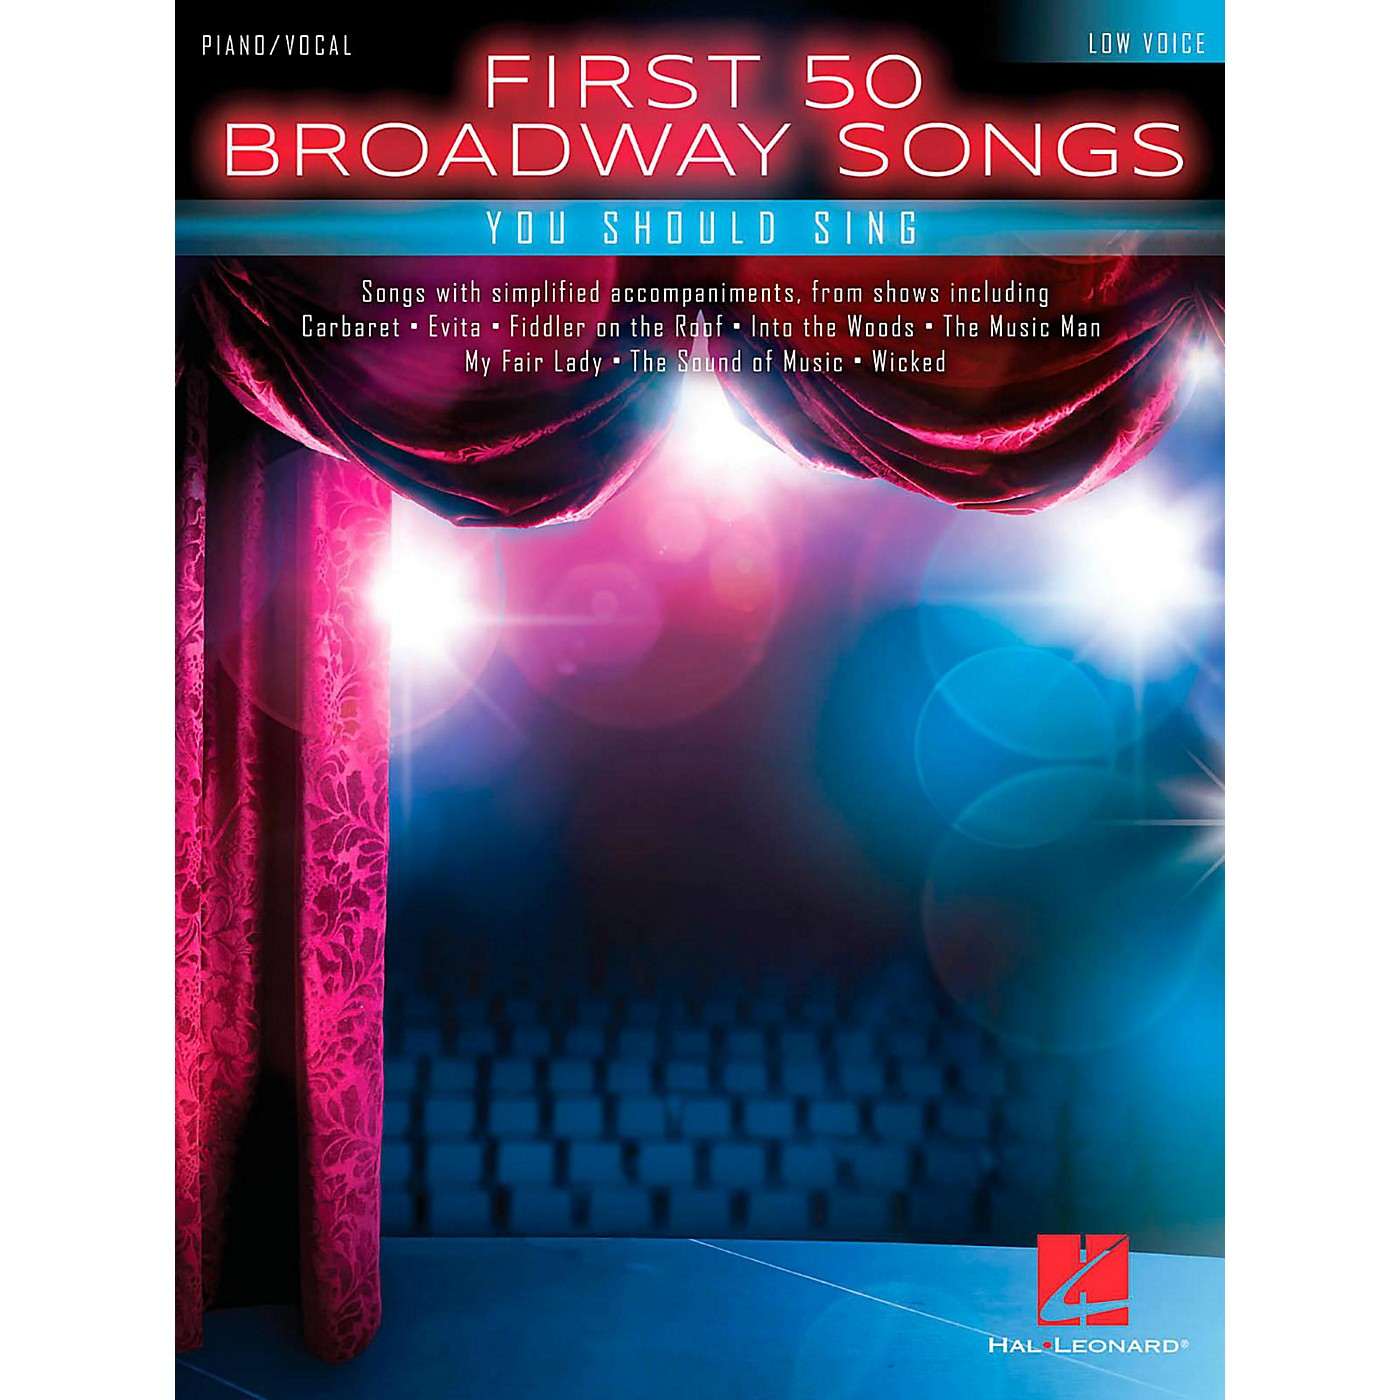 Hal Leonard First 50 Broadway Songs You Should Sing - Low Voice thumbnail